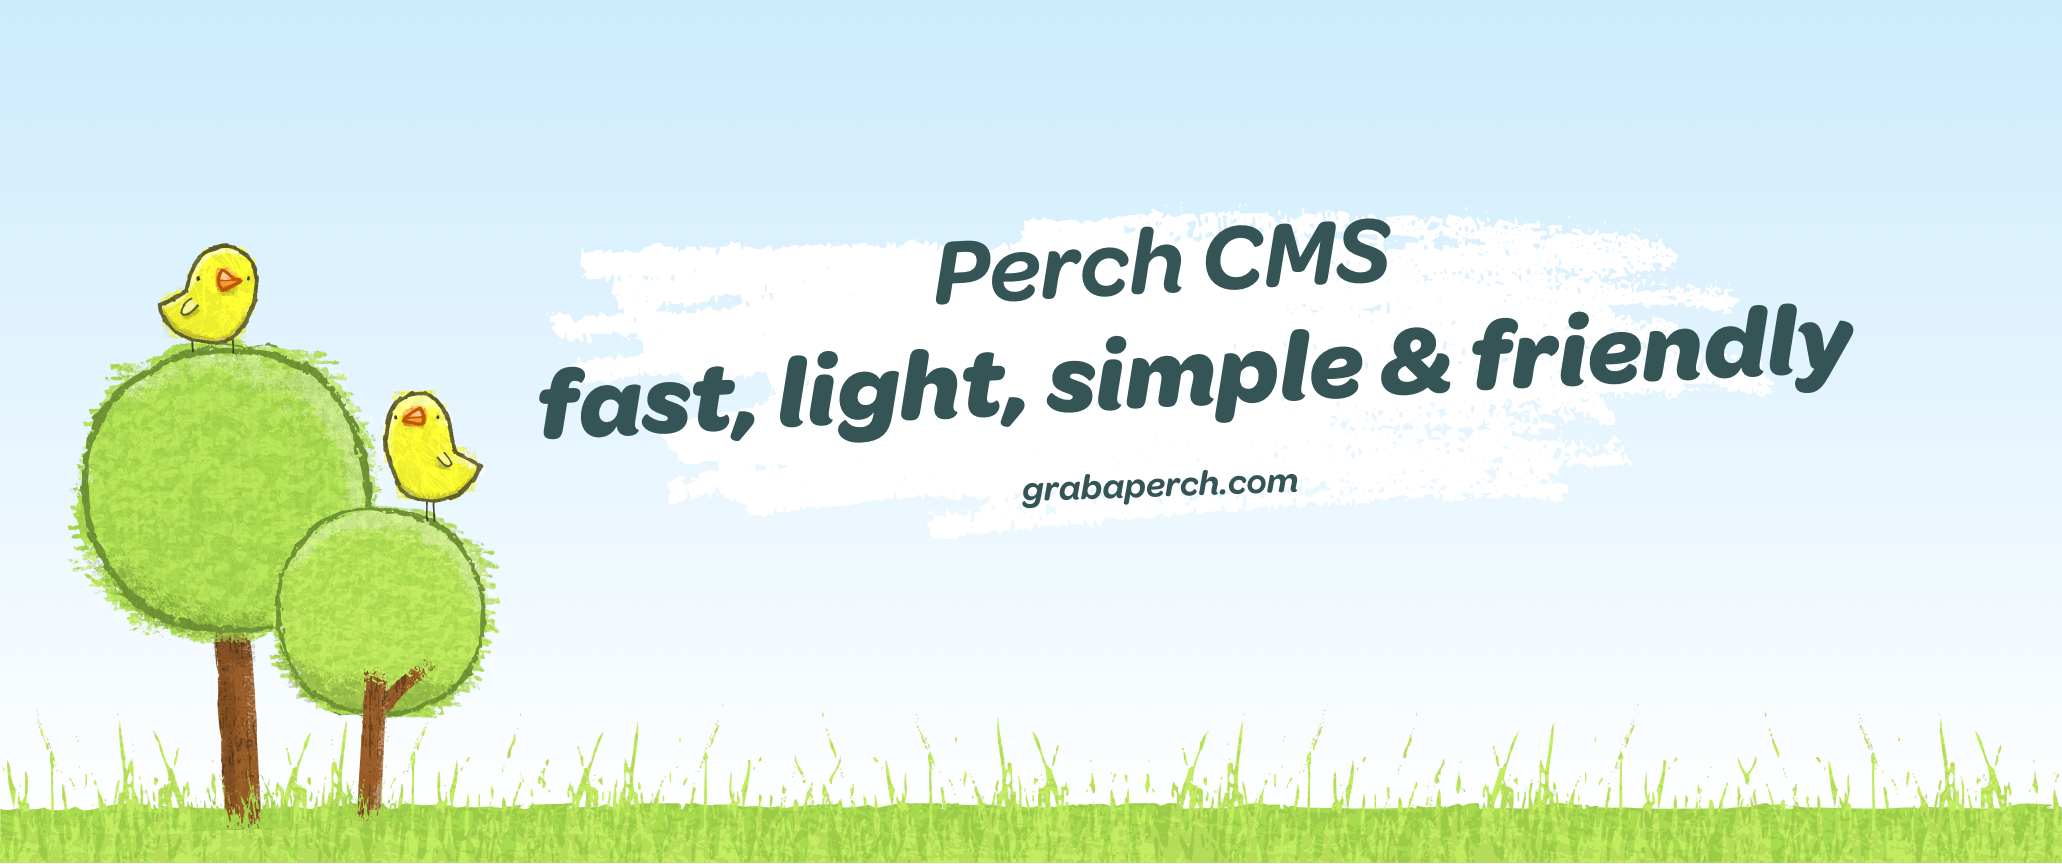 Perch CMS - built for speed and simplicity